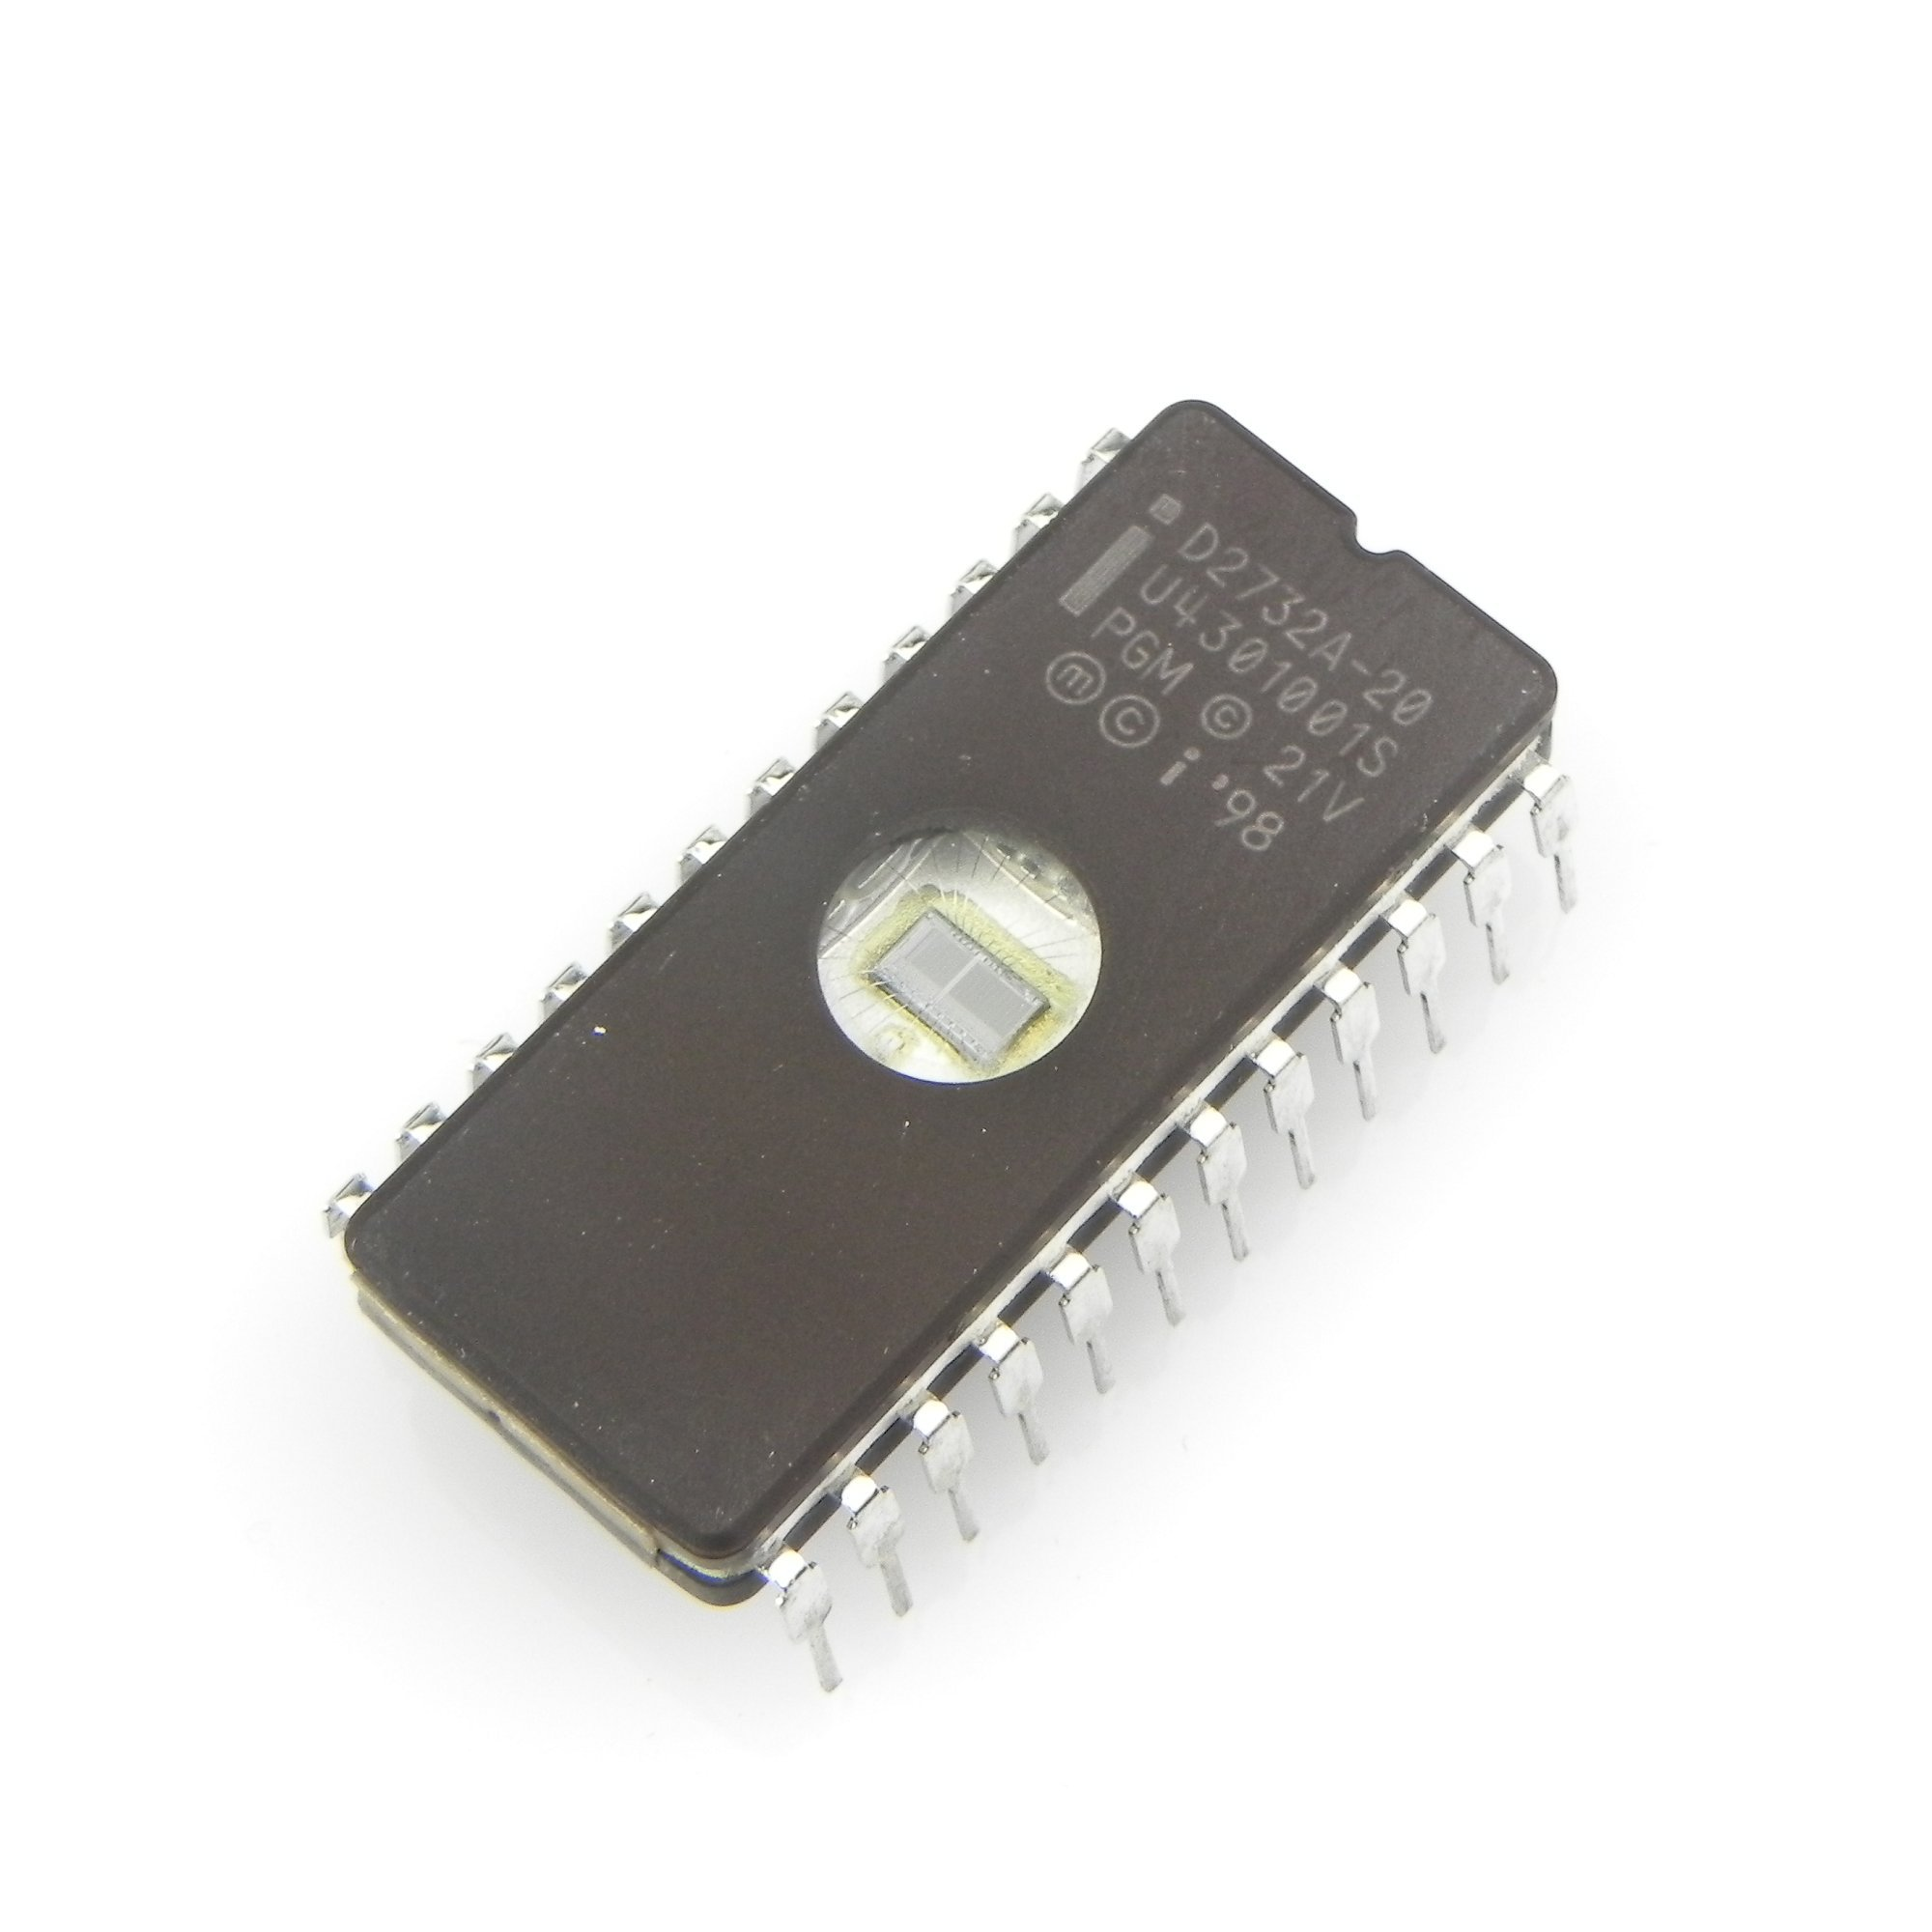 Ictouch D2732A-20 Eprom 4K x 8 MOS IC Intel Corporation CDIP-24 (Pack of 10pcs)